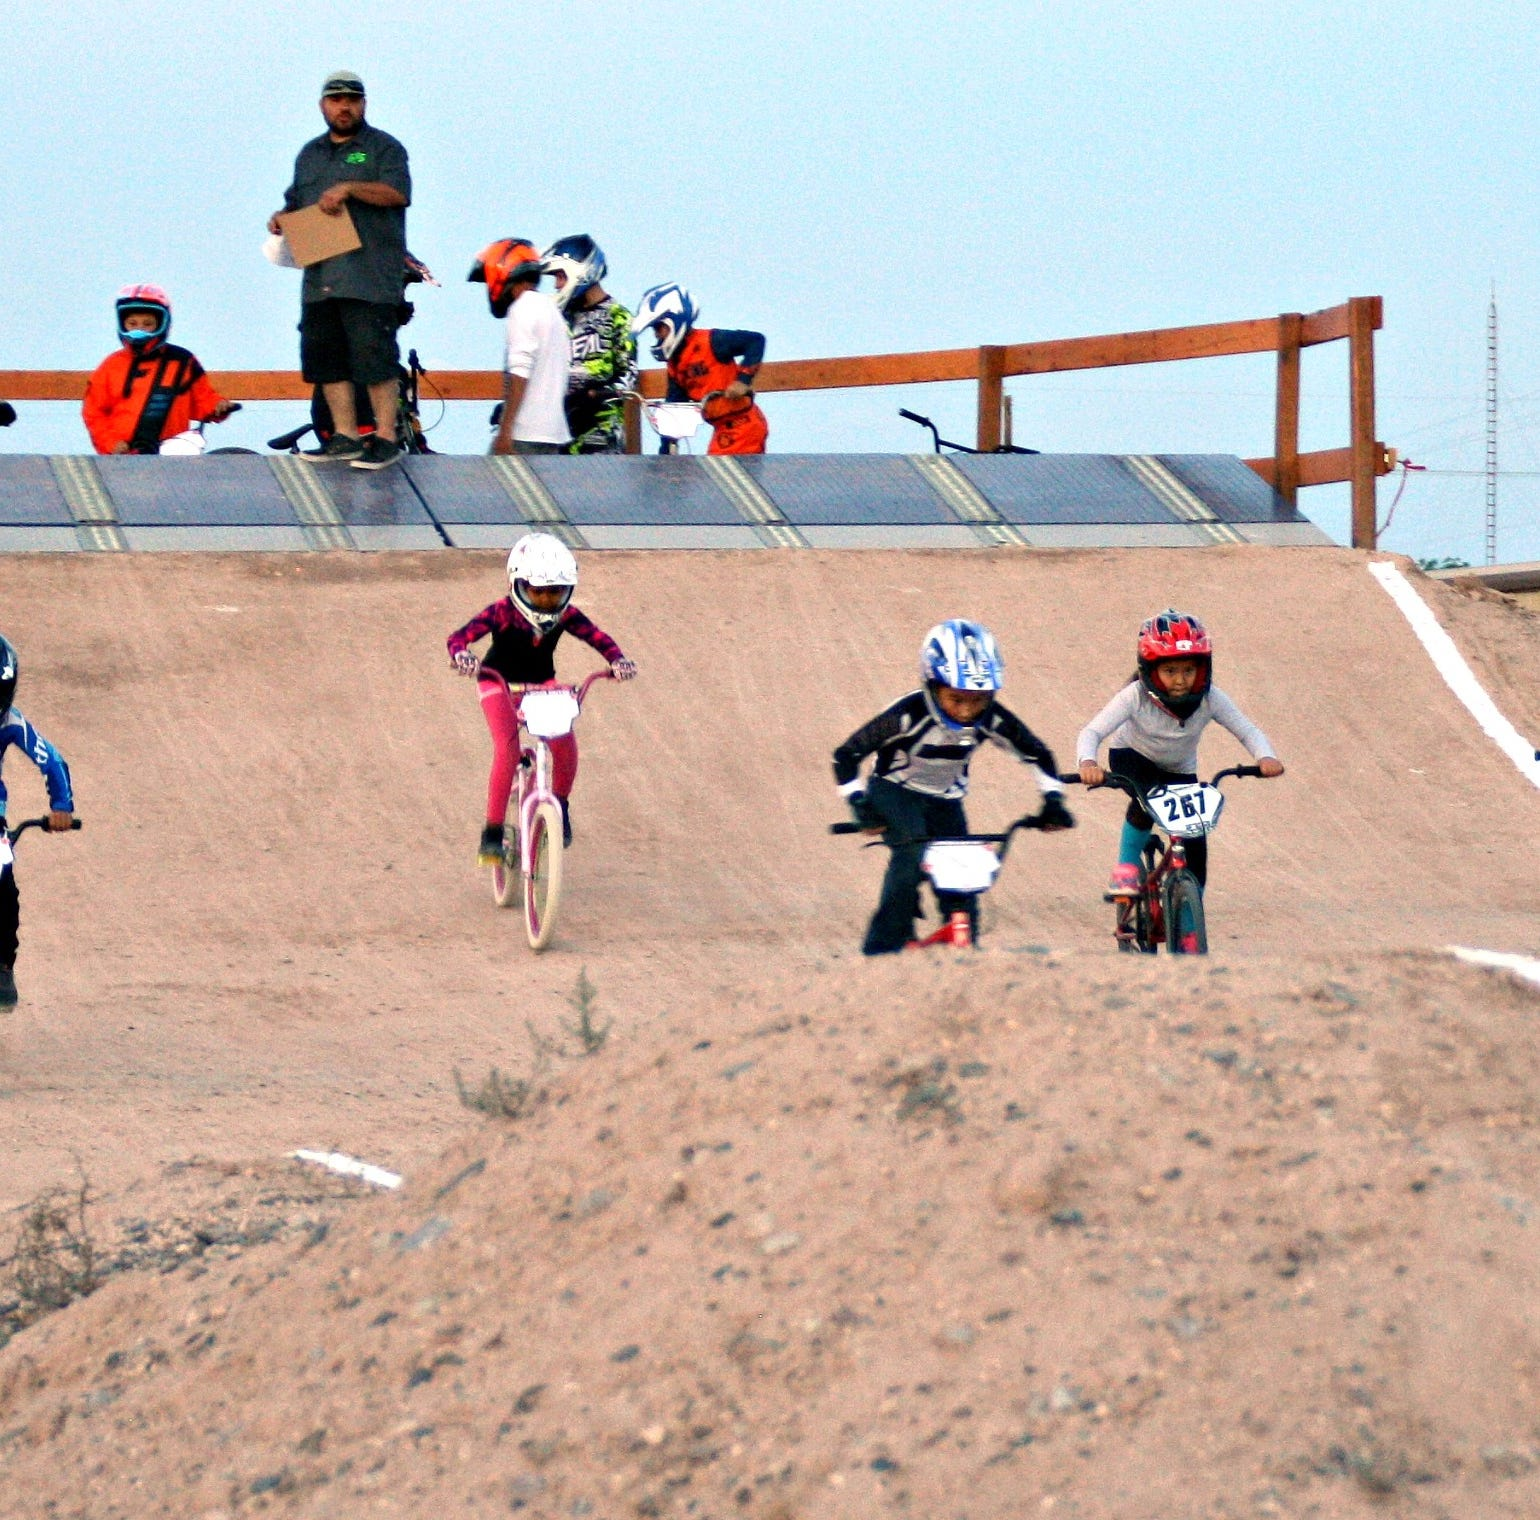 BMX riders race 575 Track at grand opening in Deming, NM